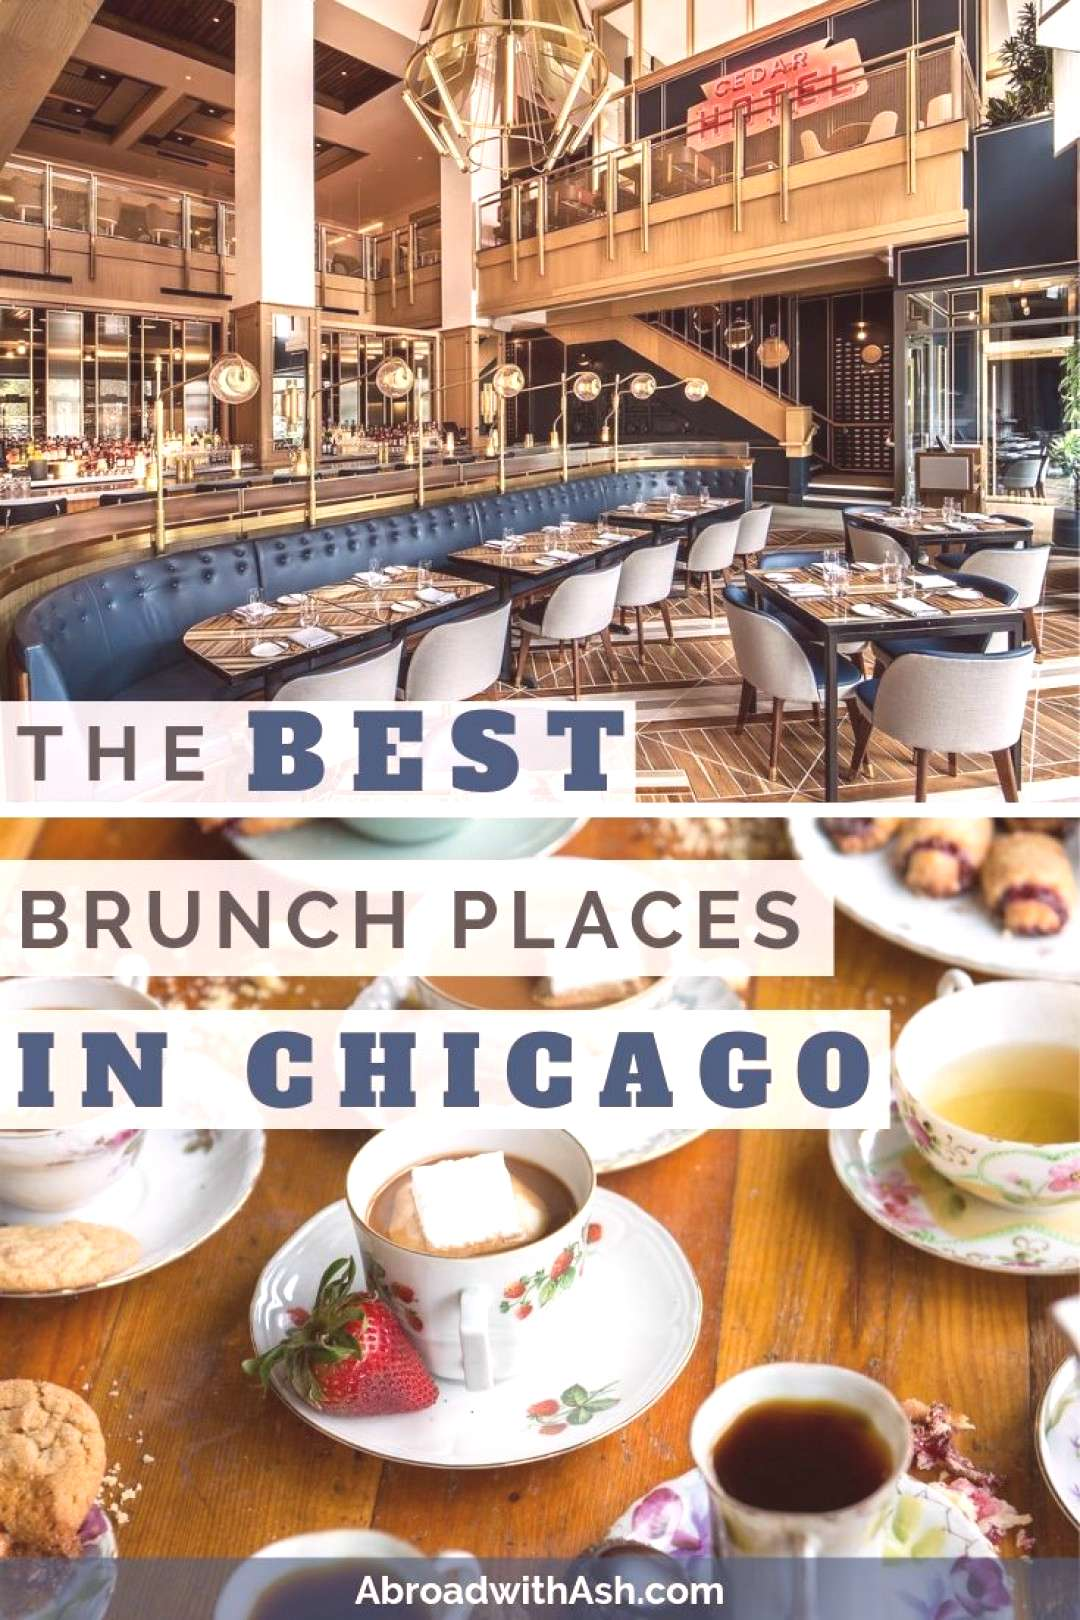 Best Brunch in Chicago – TOP 5 - Abroad with Ash Best brunch in Chicago. Looking for the BEST bru